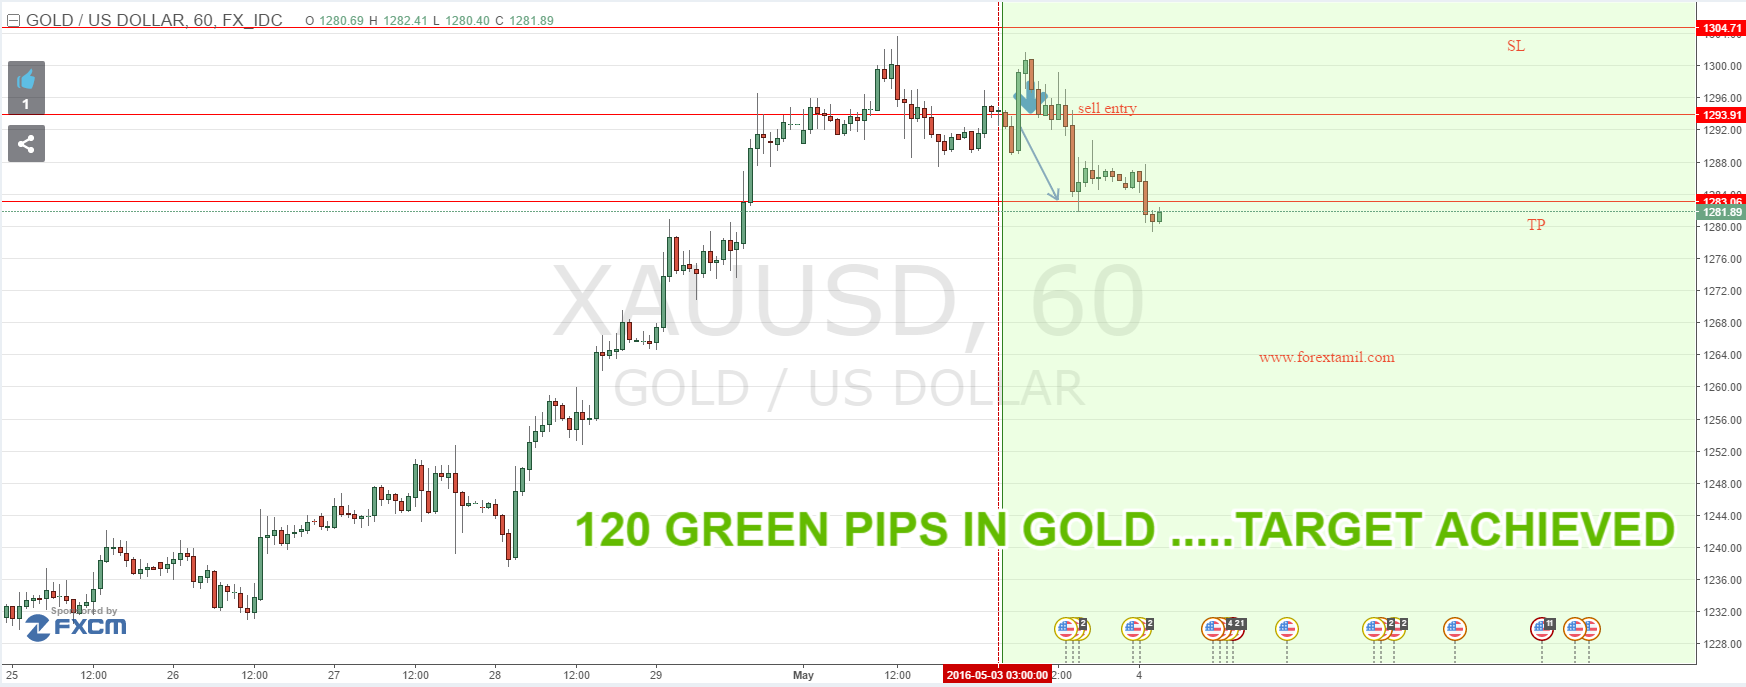 Sure shot signal Result ; 120 Green pips in GOLD …Target Achieved